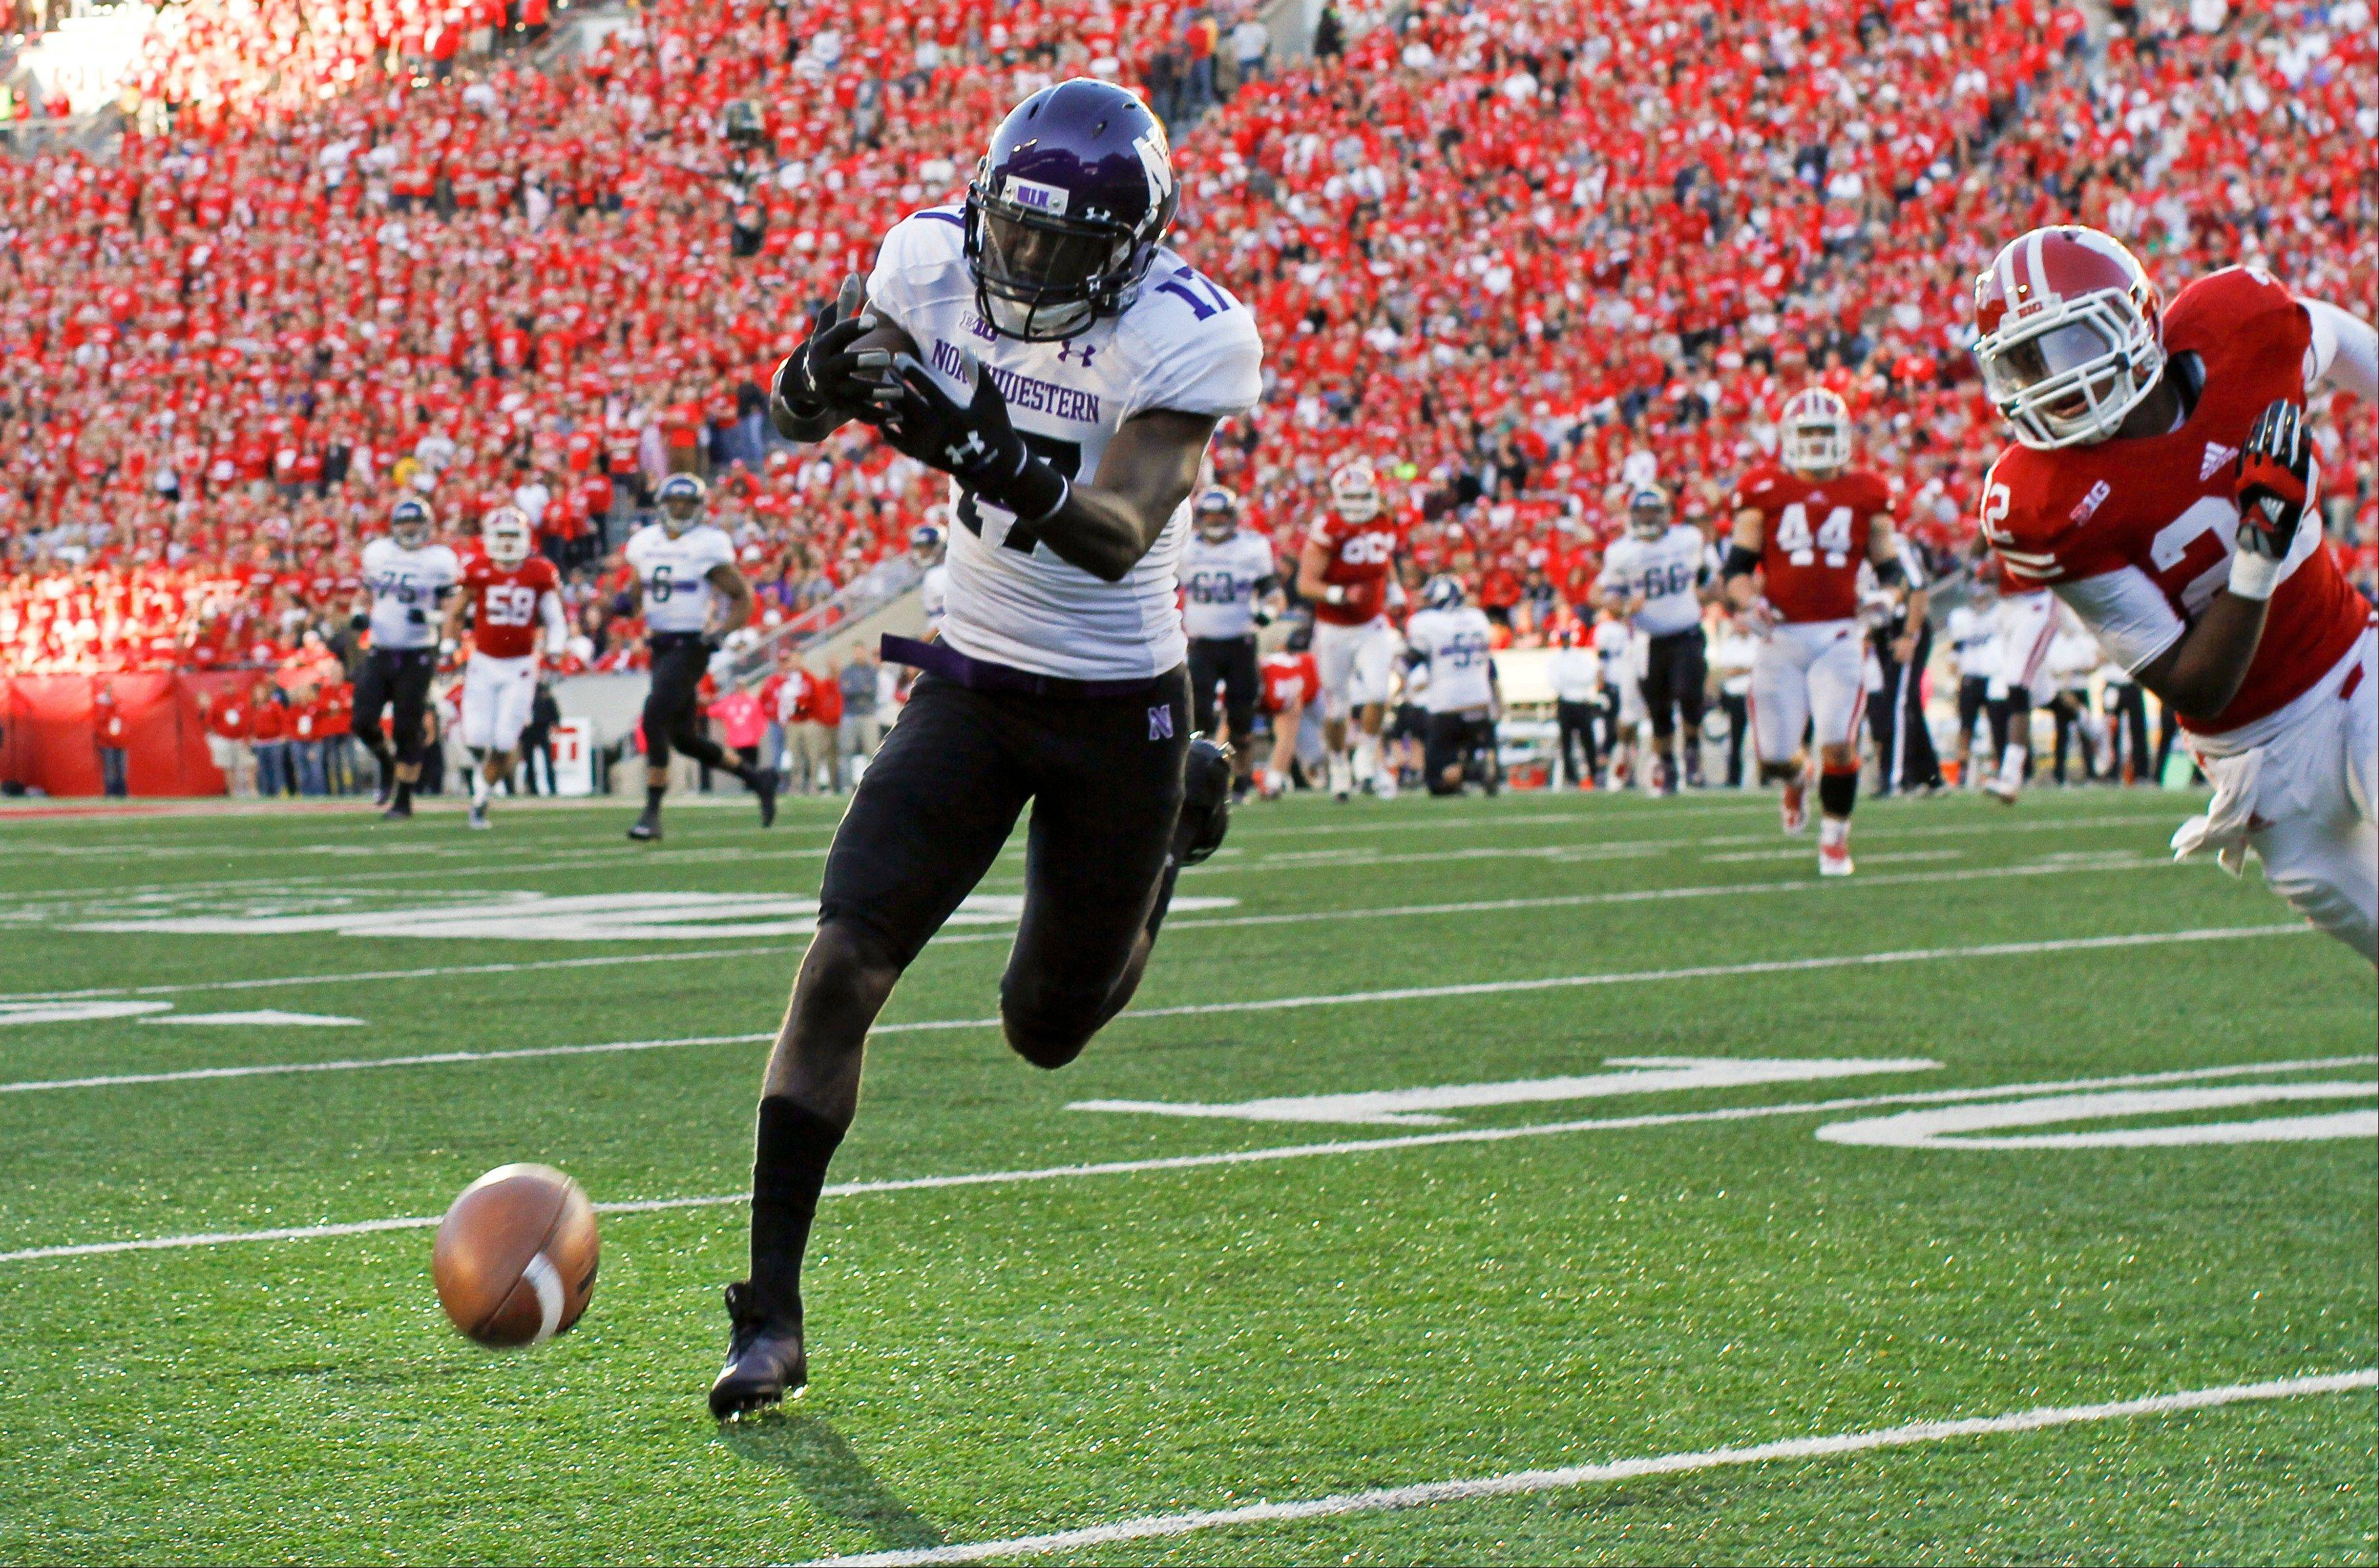 Northwestern wide receiver Rashad Lawrence misses a pass in last Saturday's loss to Wisconsin. The Wildcats will look to end a two-game slide when Minnesota comes to Evanston this weekend.